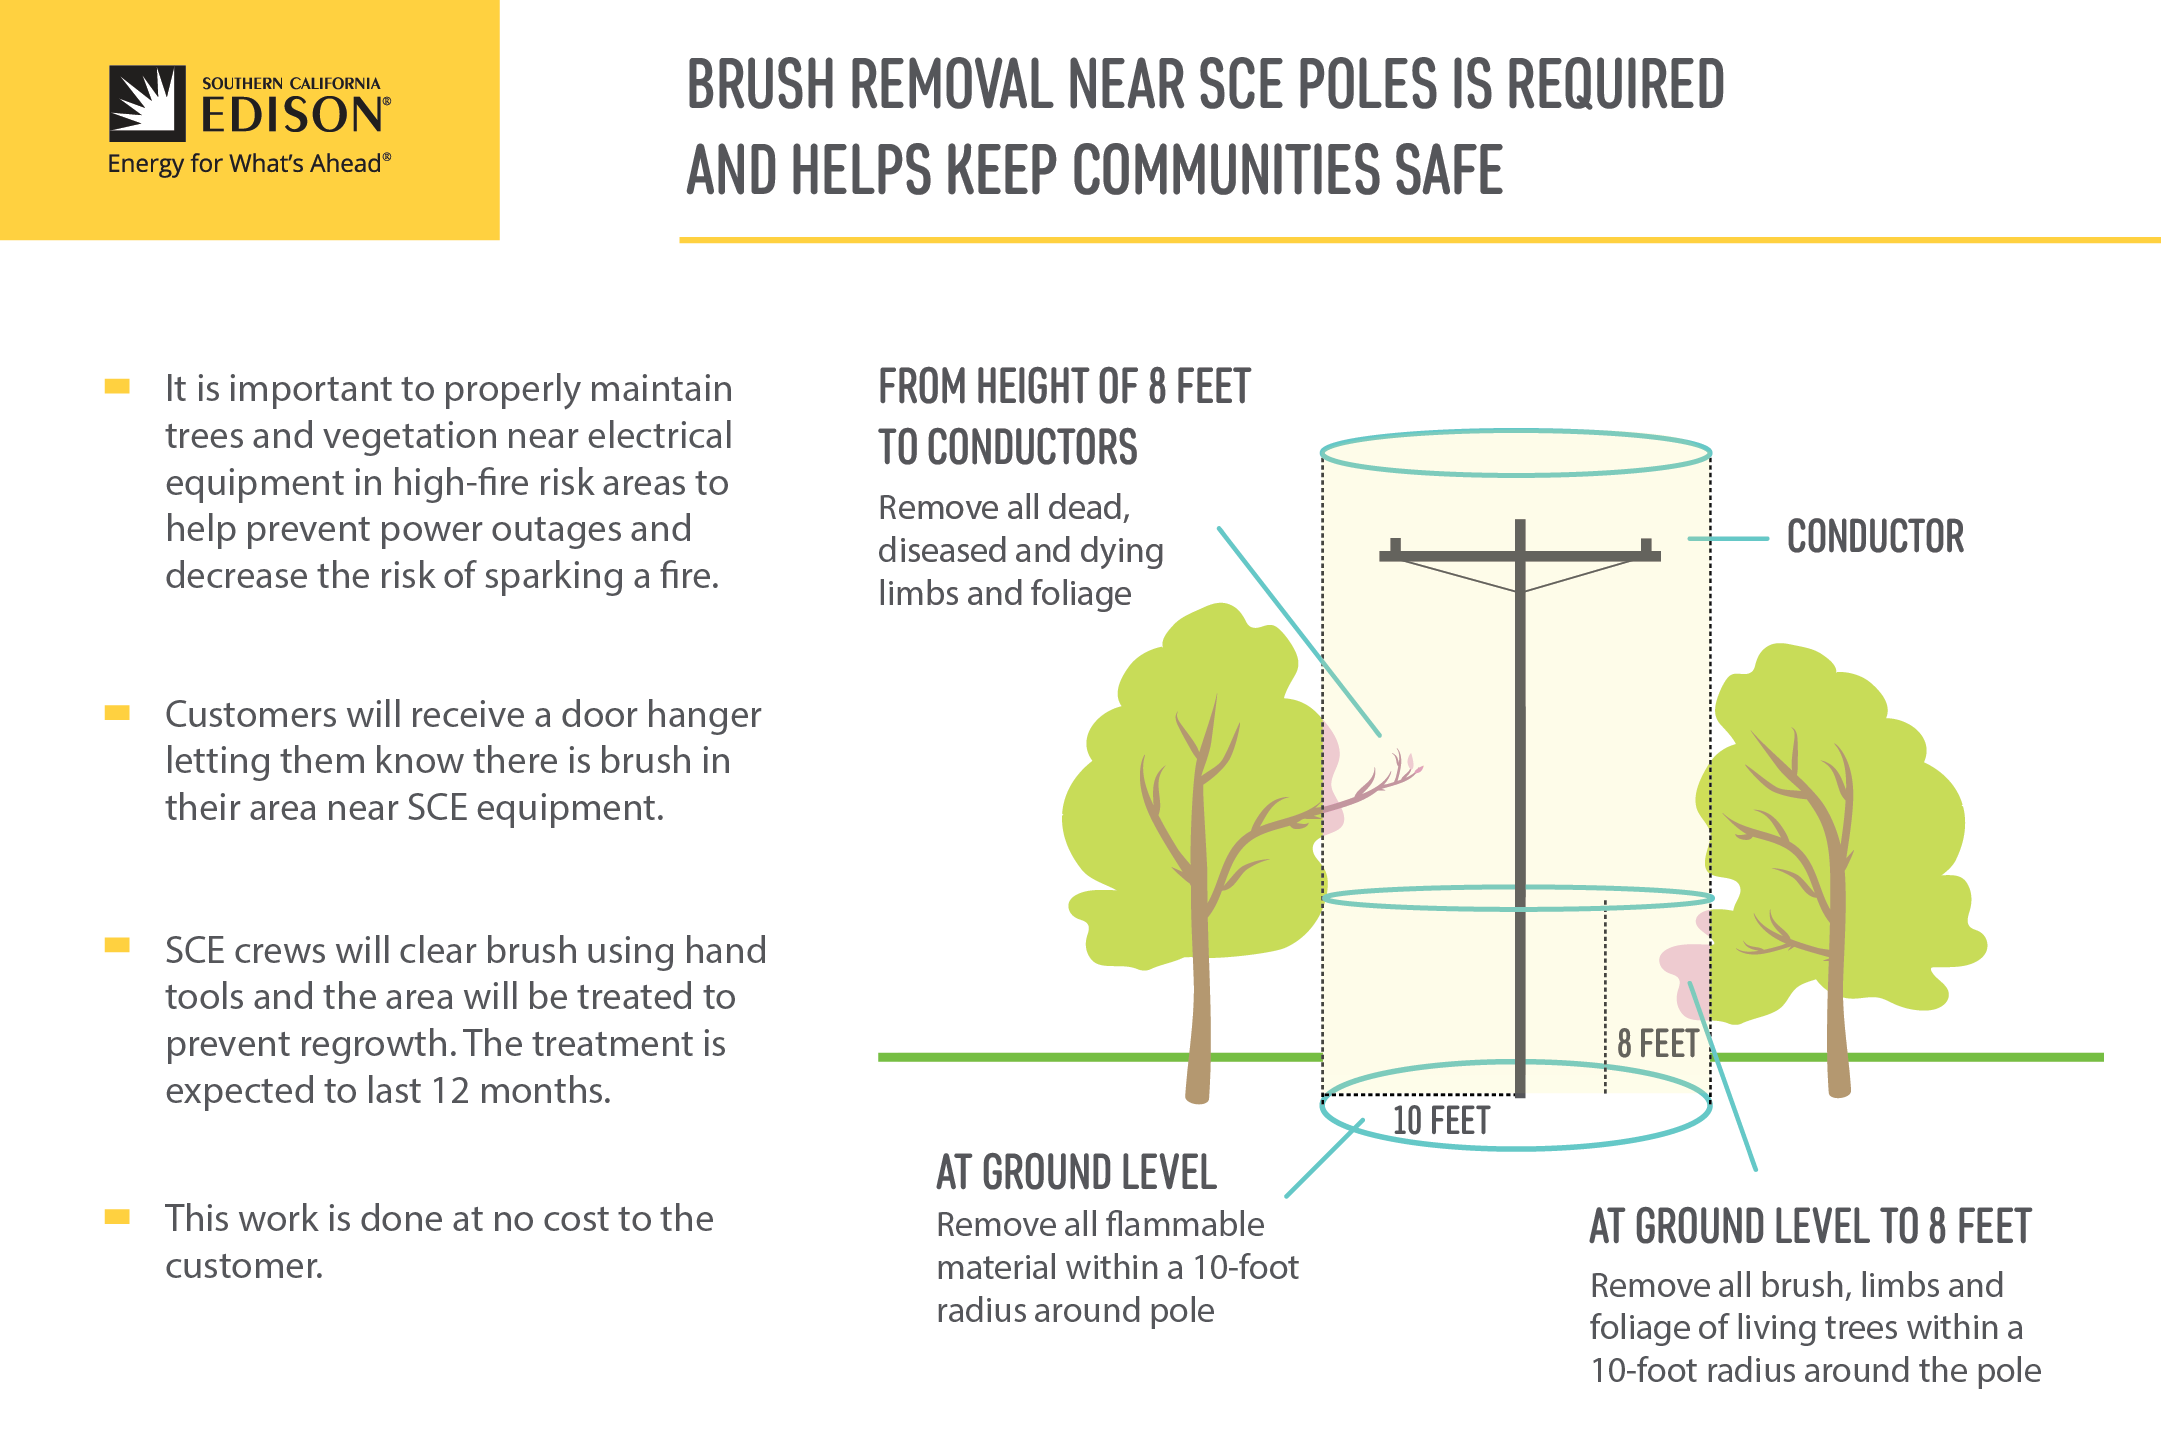 Brush removal near SCE poles is required and helps keep communities safe.